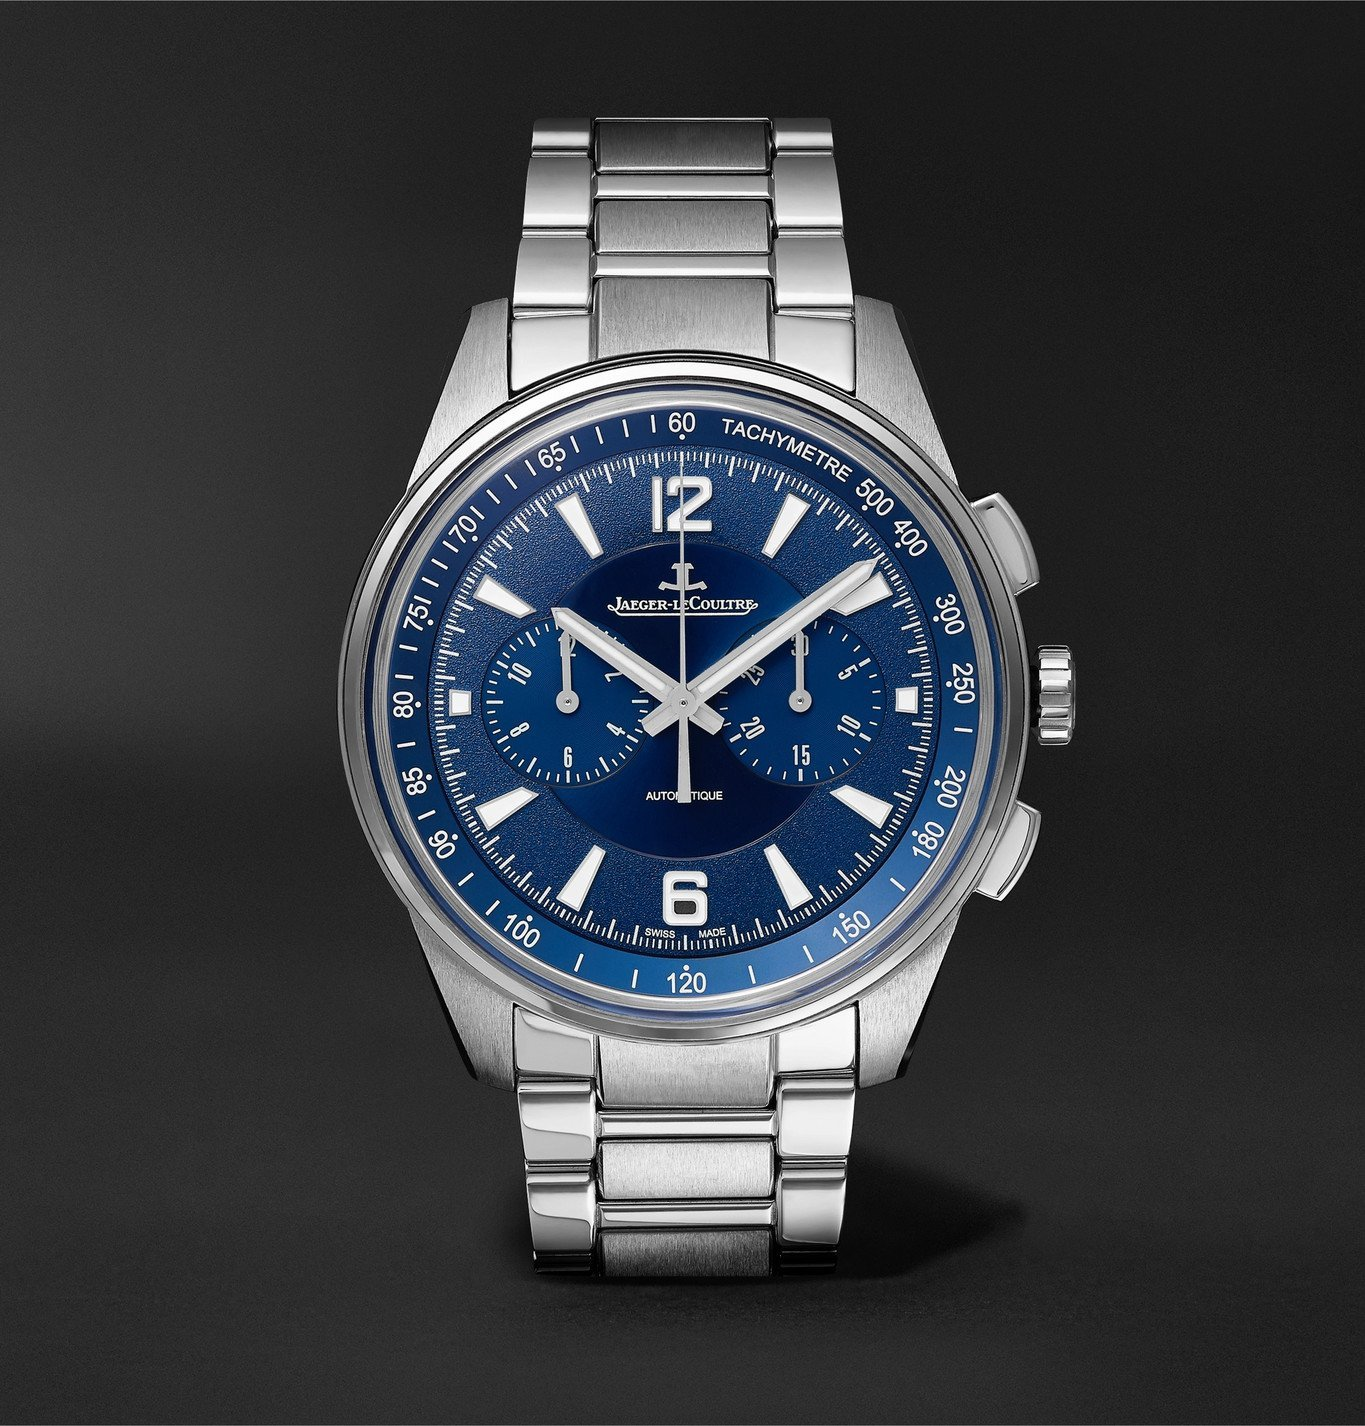 Photo: Jaeger-LeCoultre - Polaris Automatic Chronograph 42mm Stainless Steel Watch, Ref. No. 9028180 - Blue